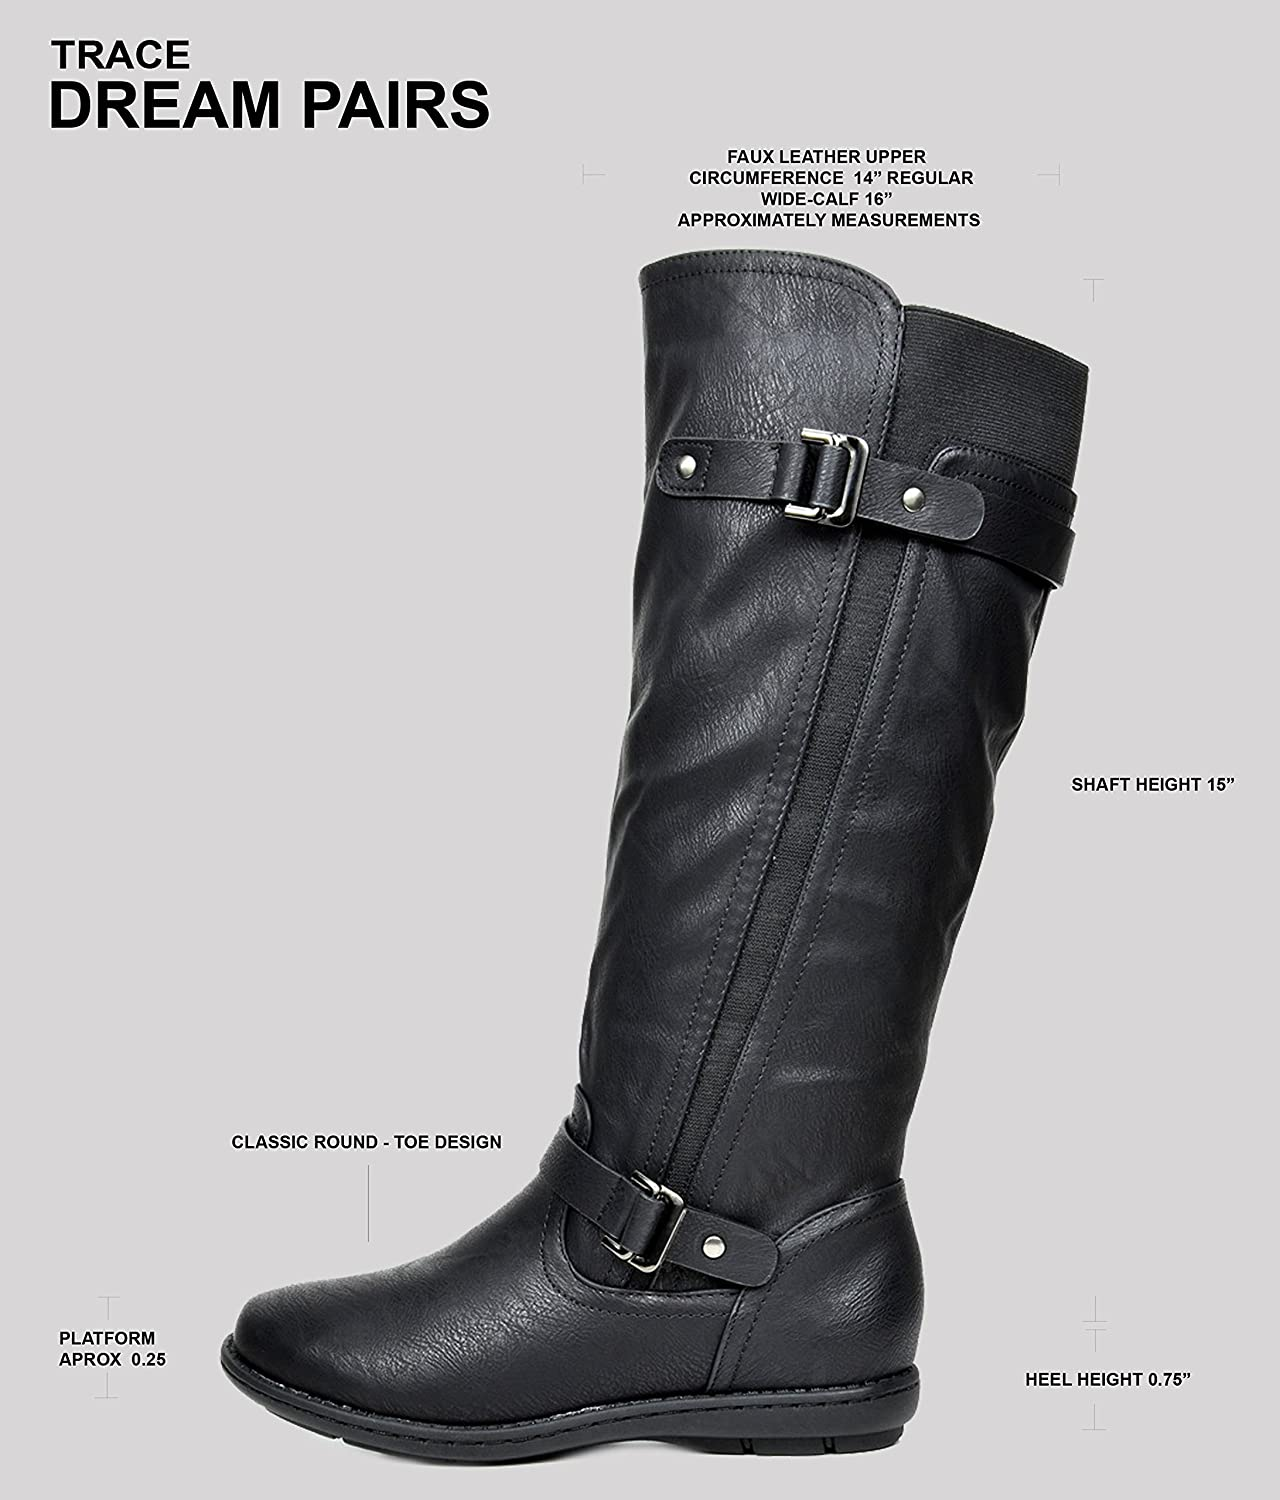 e66a1bc3054 ... DREAM PAIRS Women s Faux Fur-Lined Knee High Winter Winter Winter Boots  (Wide-